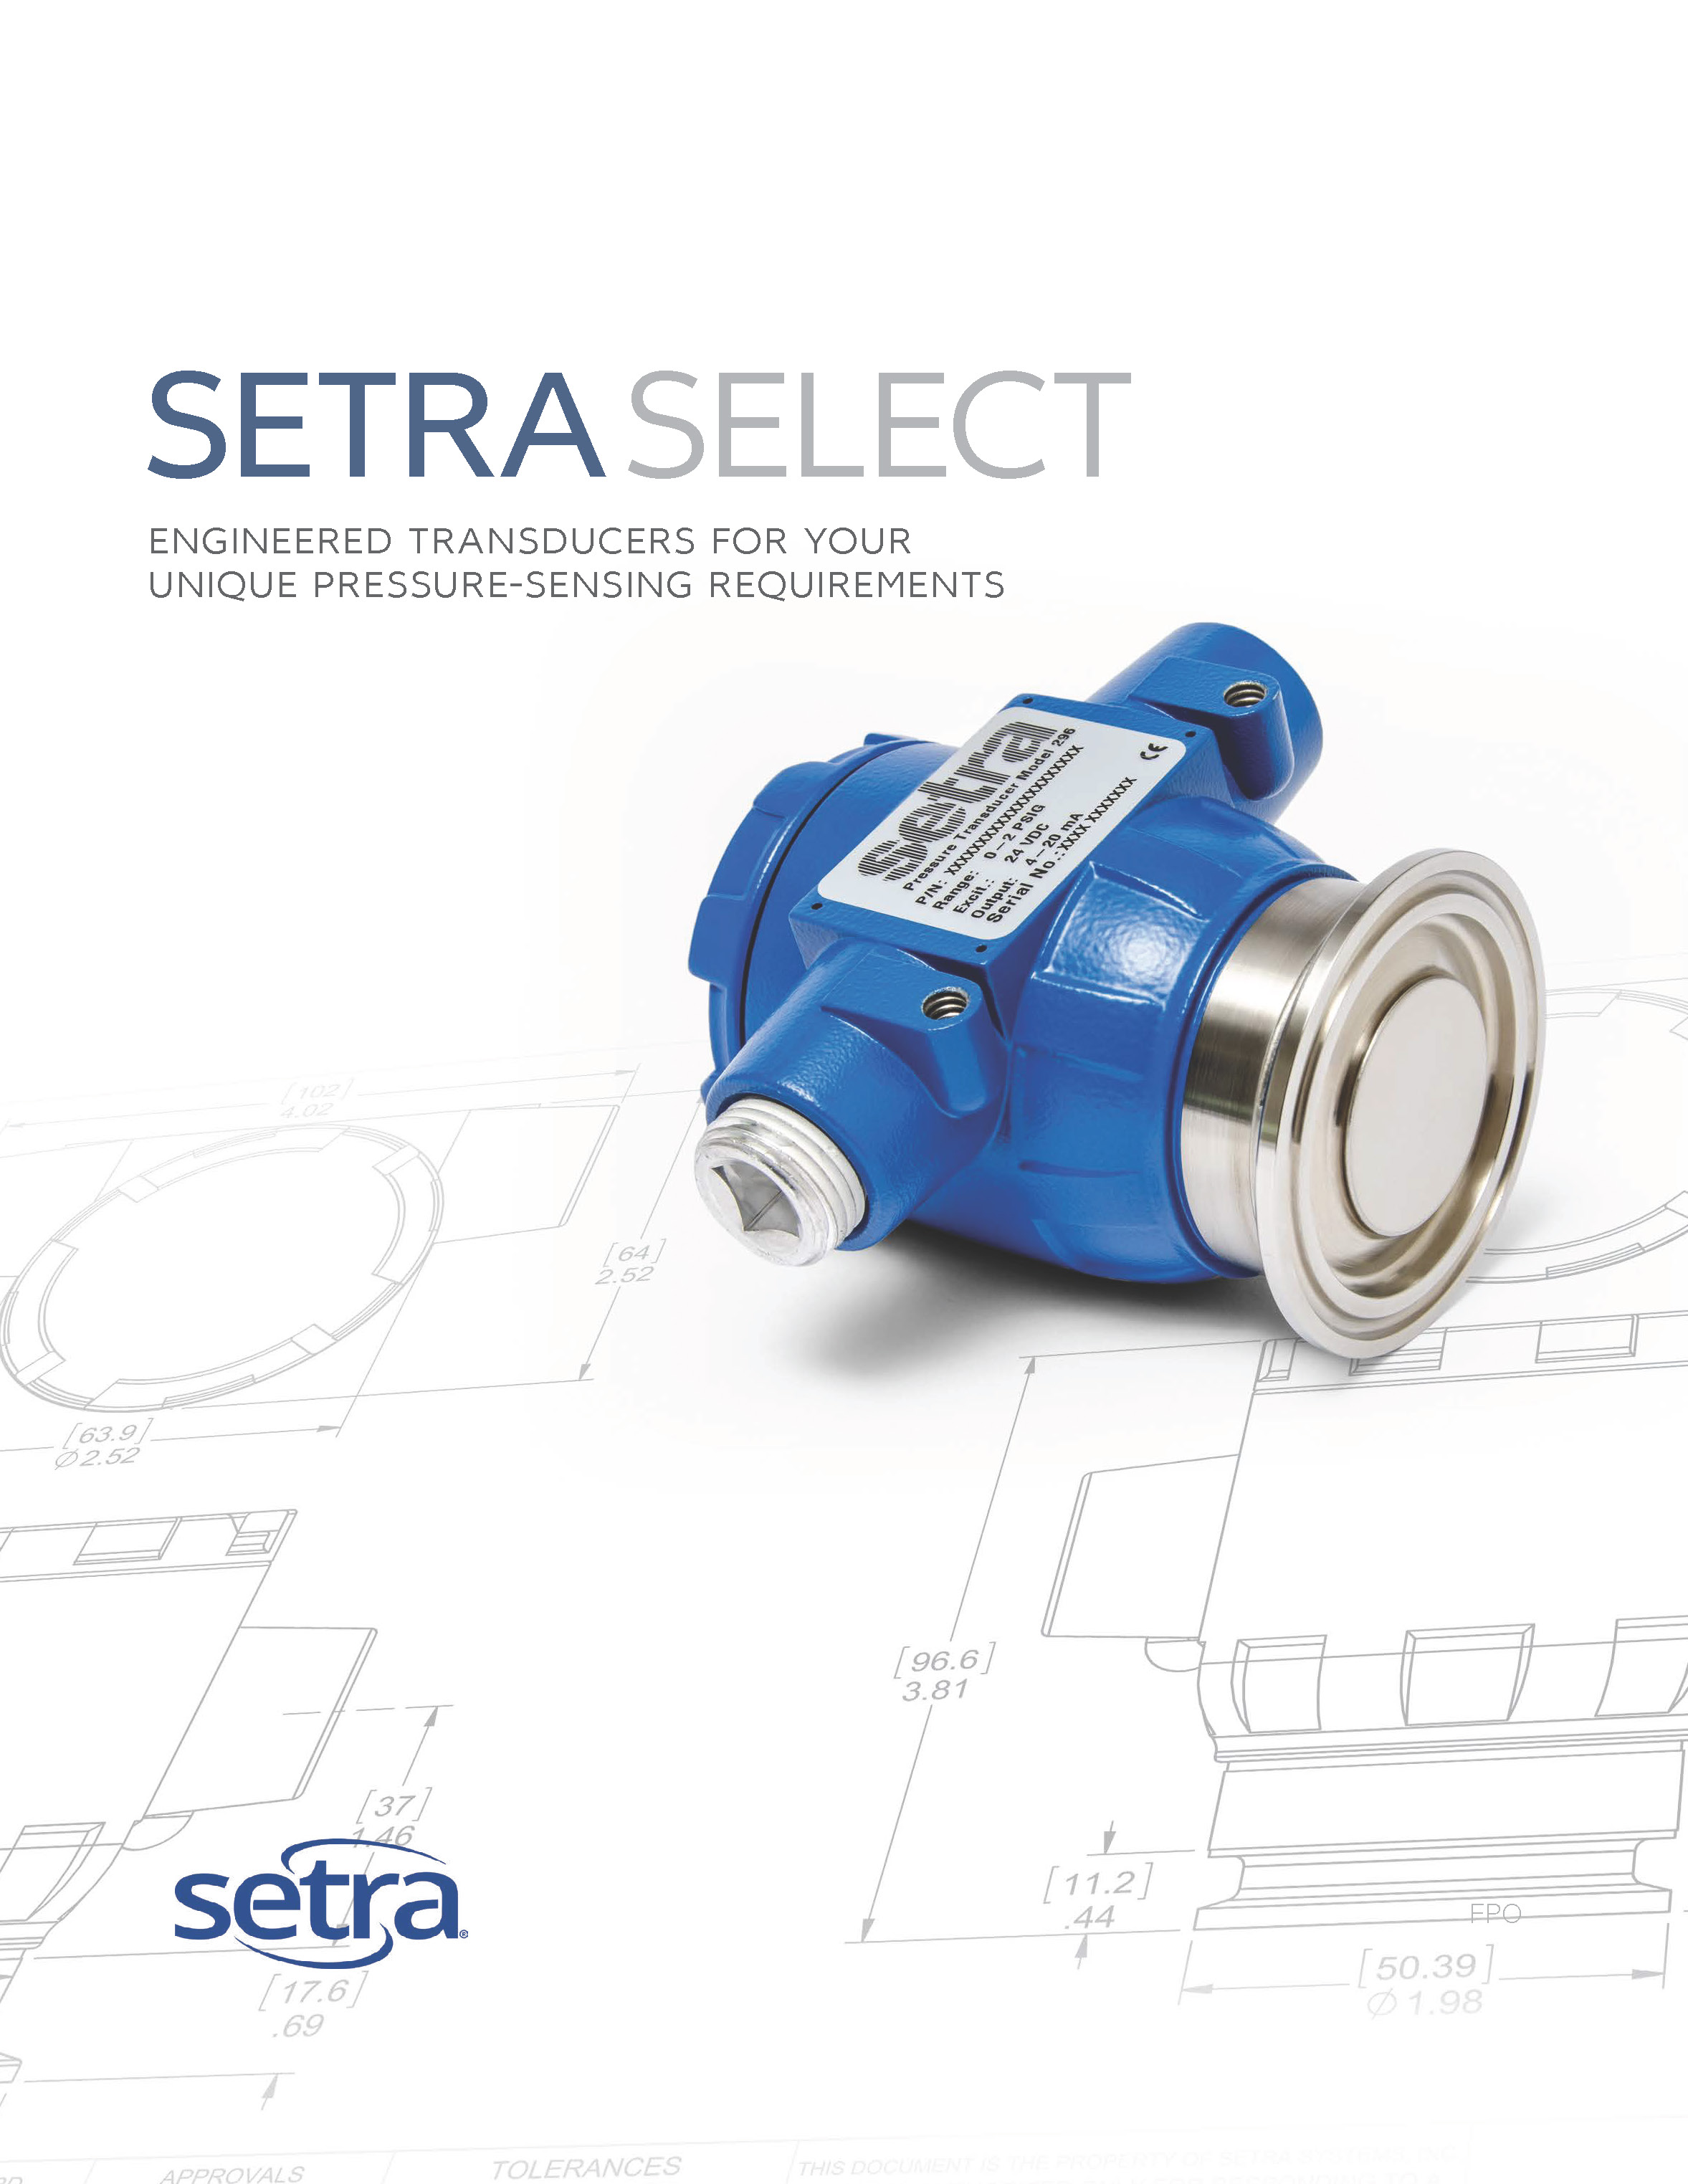 Customized Pressure Transducers- Setra Select